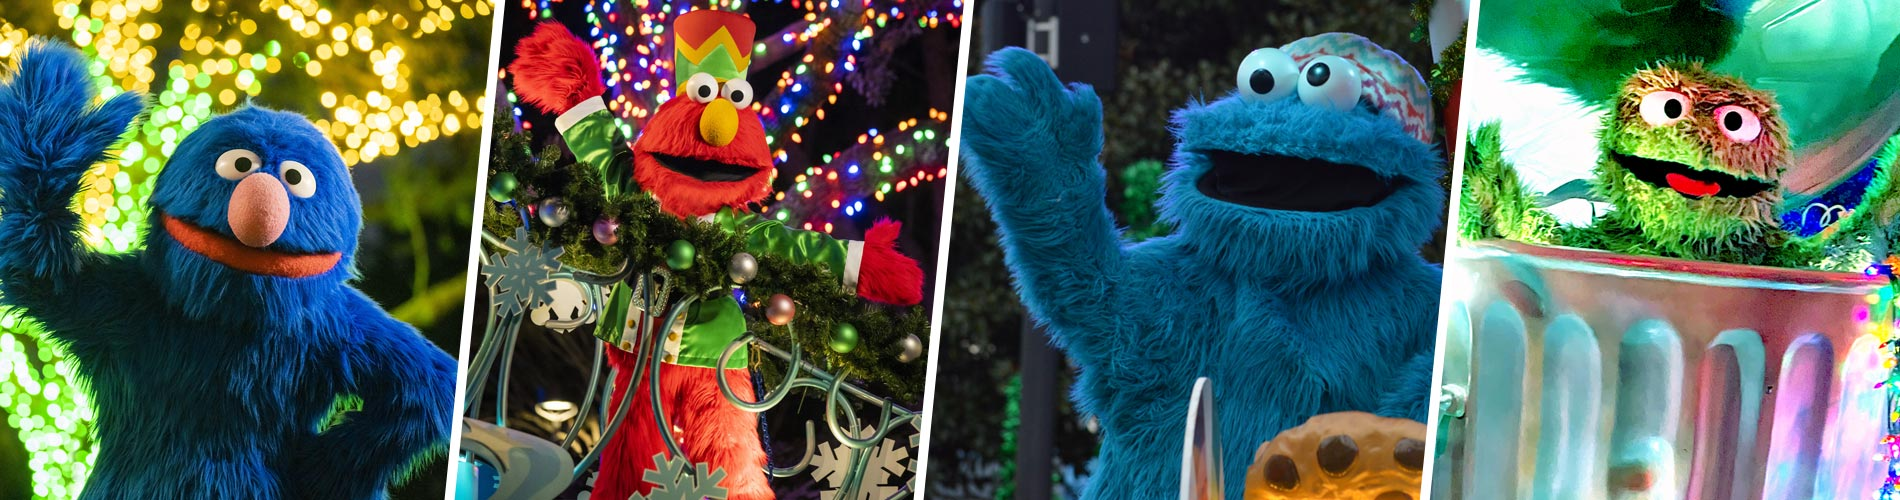 Sesame Street Meet and Greets at SeaWorld San Diego Christmas Celebration